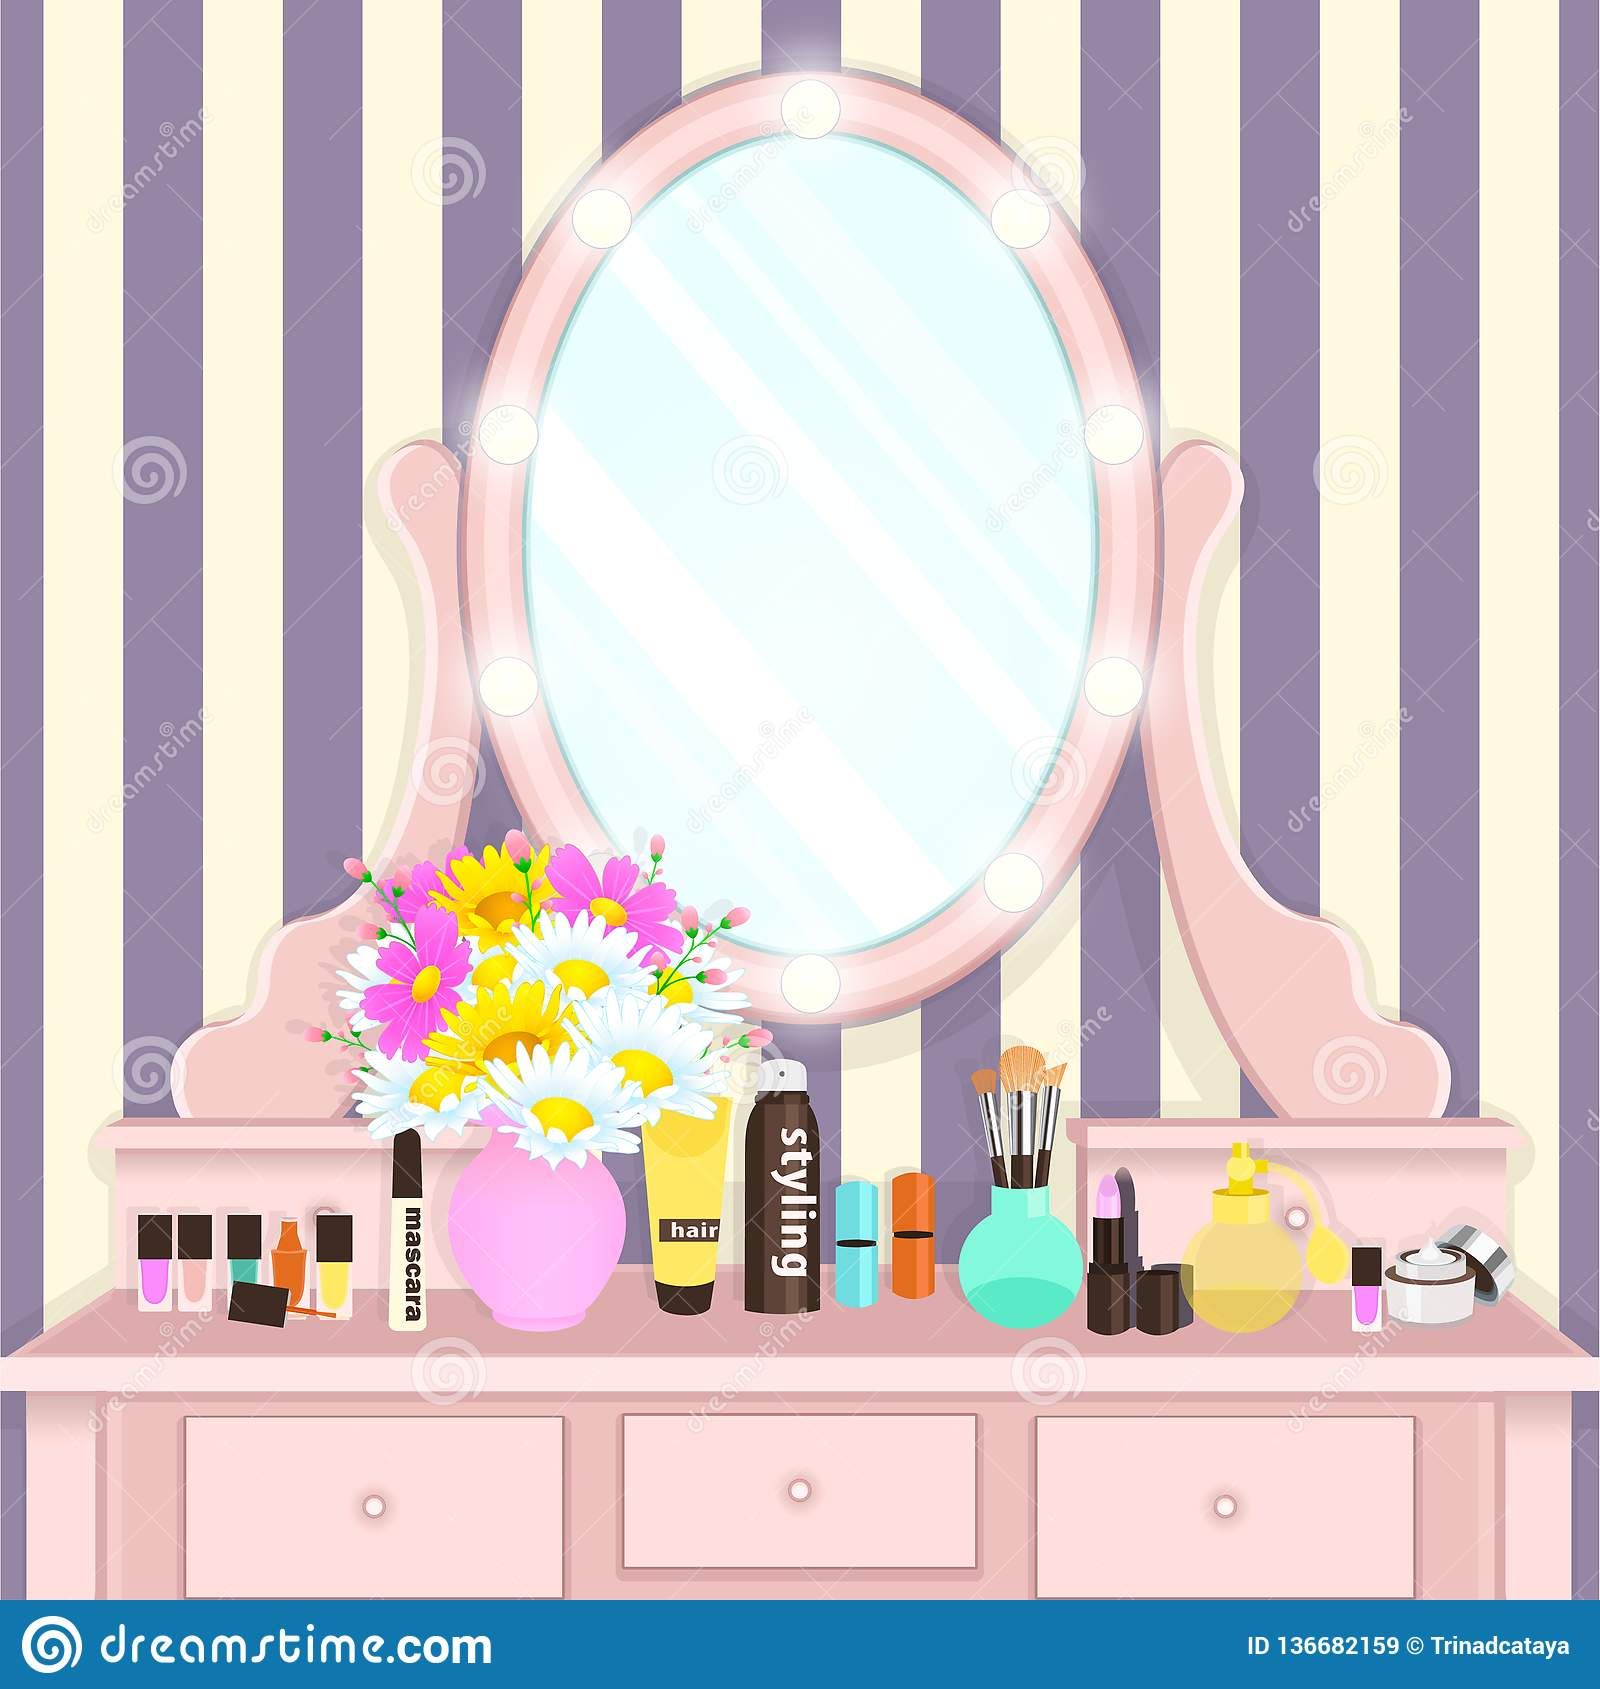 Dressing table with mirror with lights female boudoir for applying makeup flat drawing